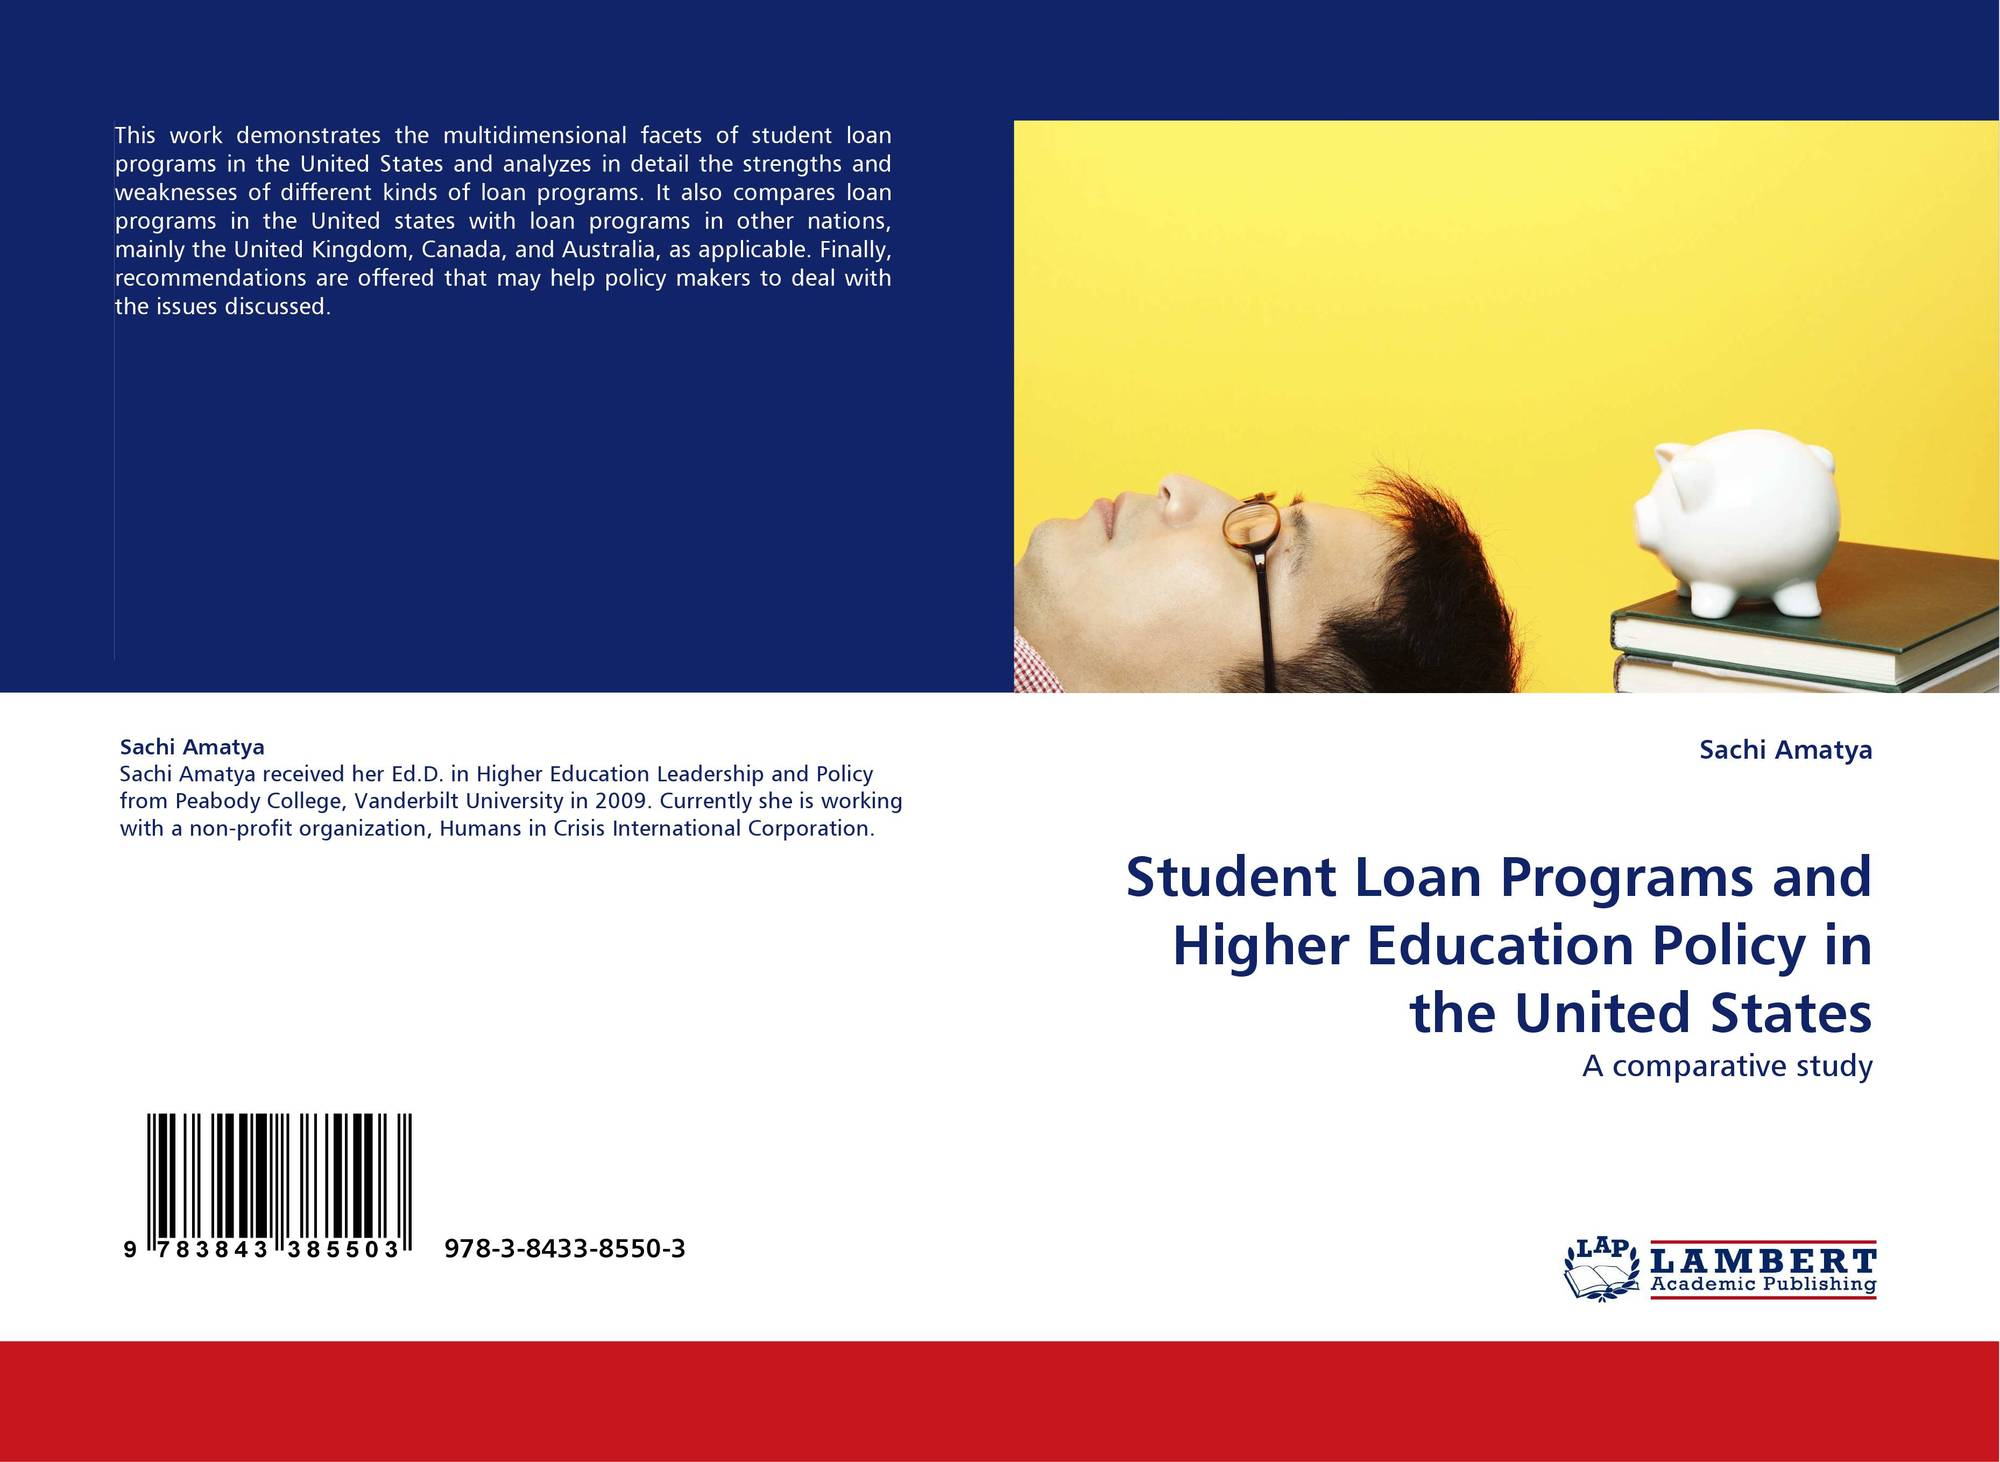 omparison of study loans that being